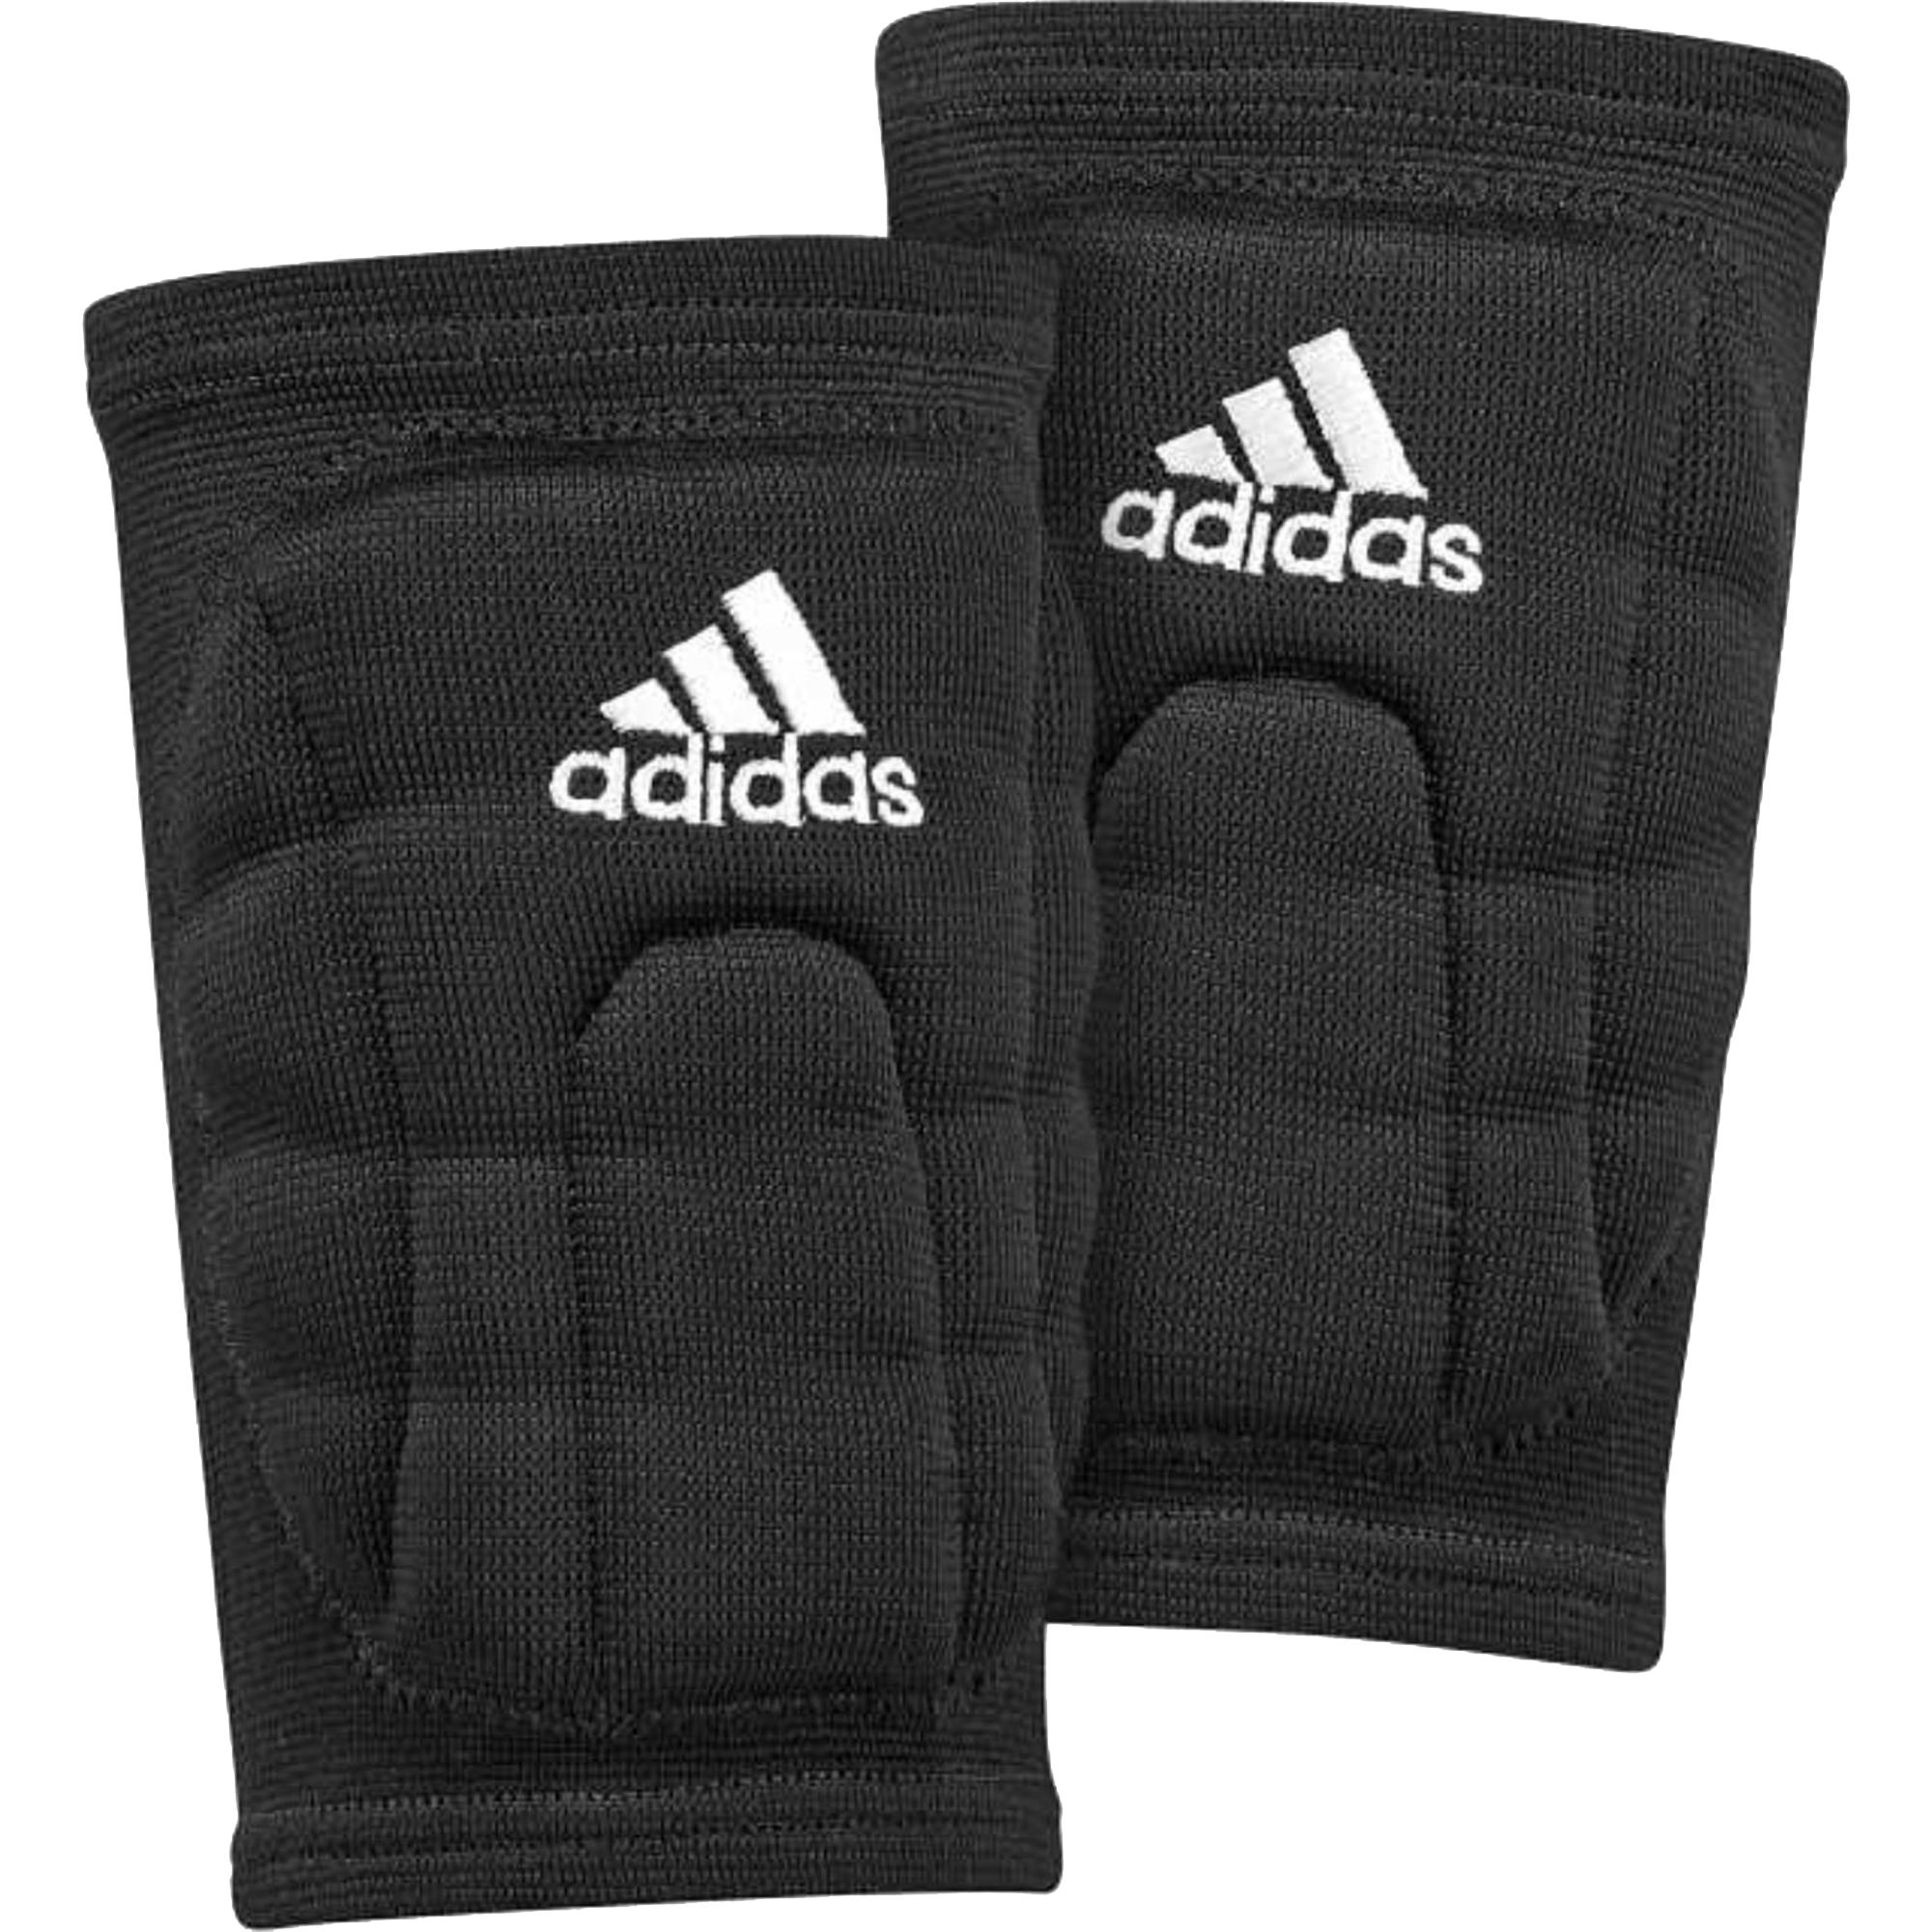 adidas Volleyball Knee Pads Competition 3.0 Dizlik #Z51054 ...